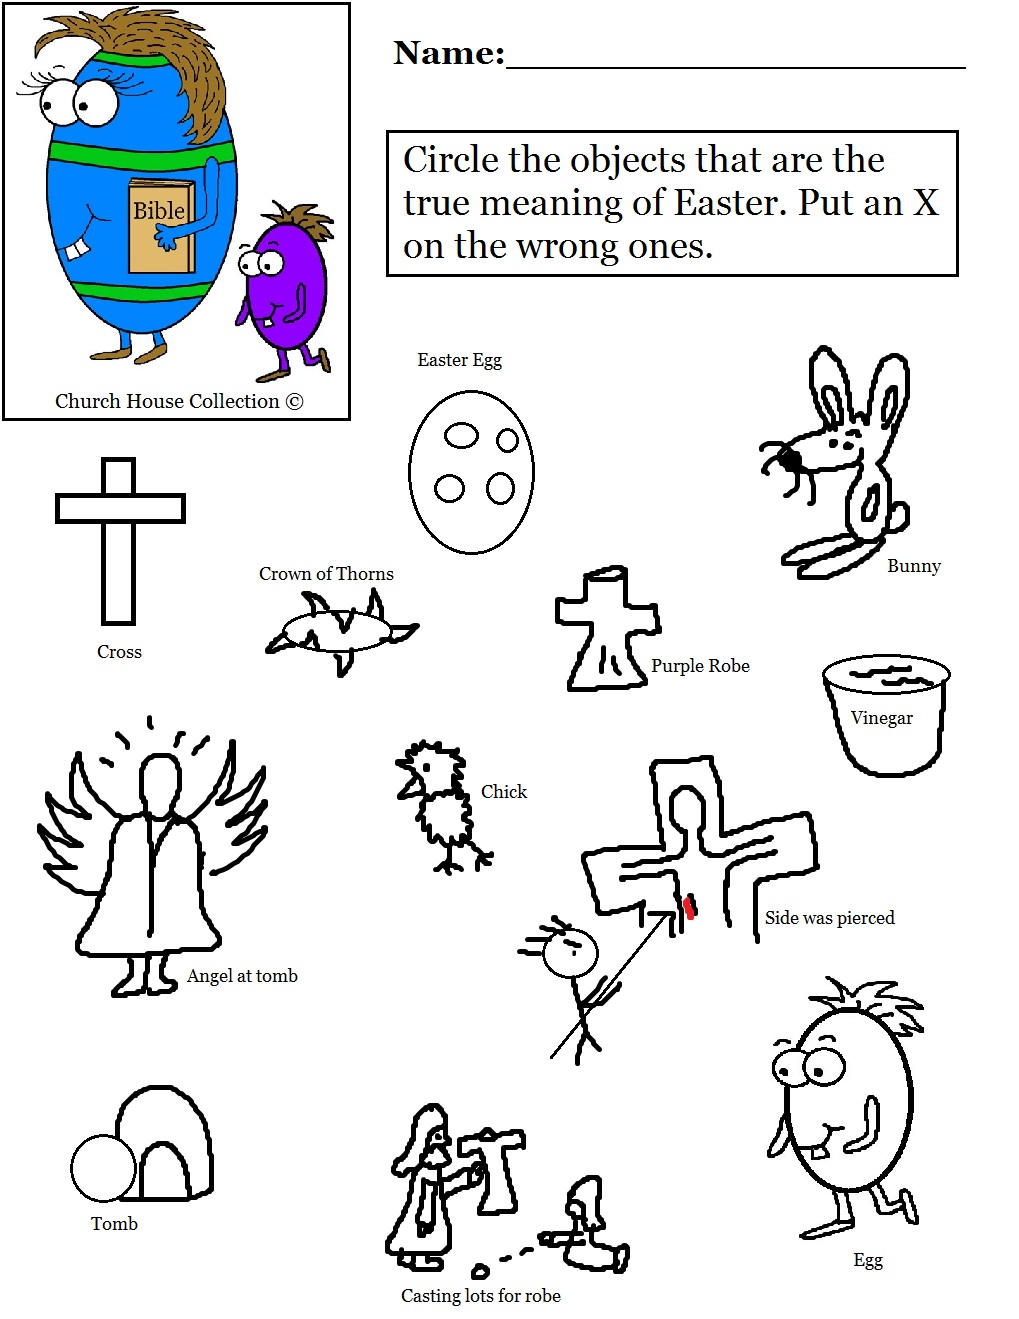 Worksheet Bible Story Worksheets church house collection blog easter egg with bible worksheet circle the objects that are true meaning of put an x on wrong ones this is a really simple for smaller children